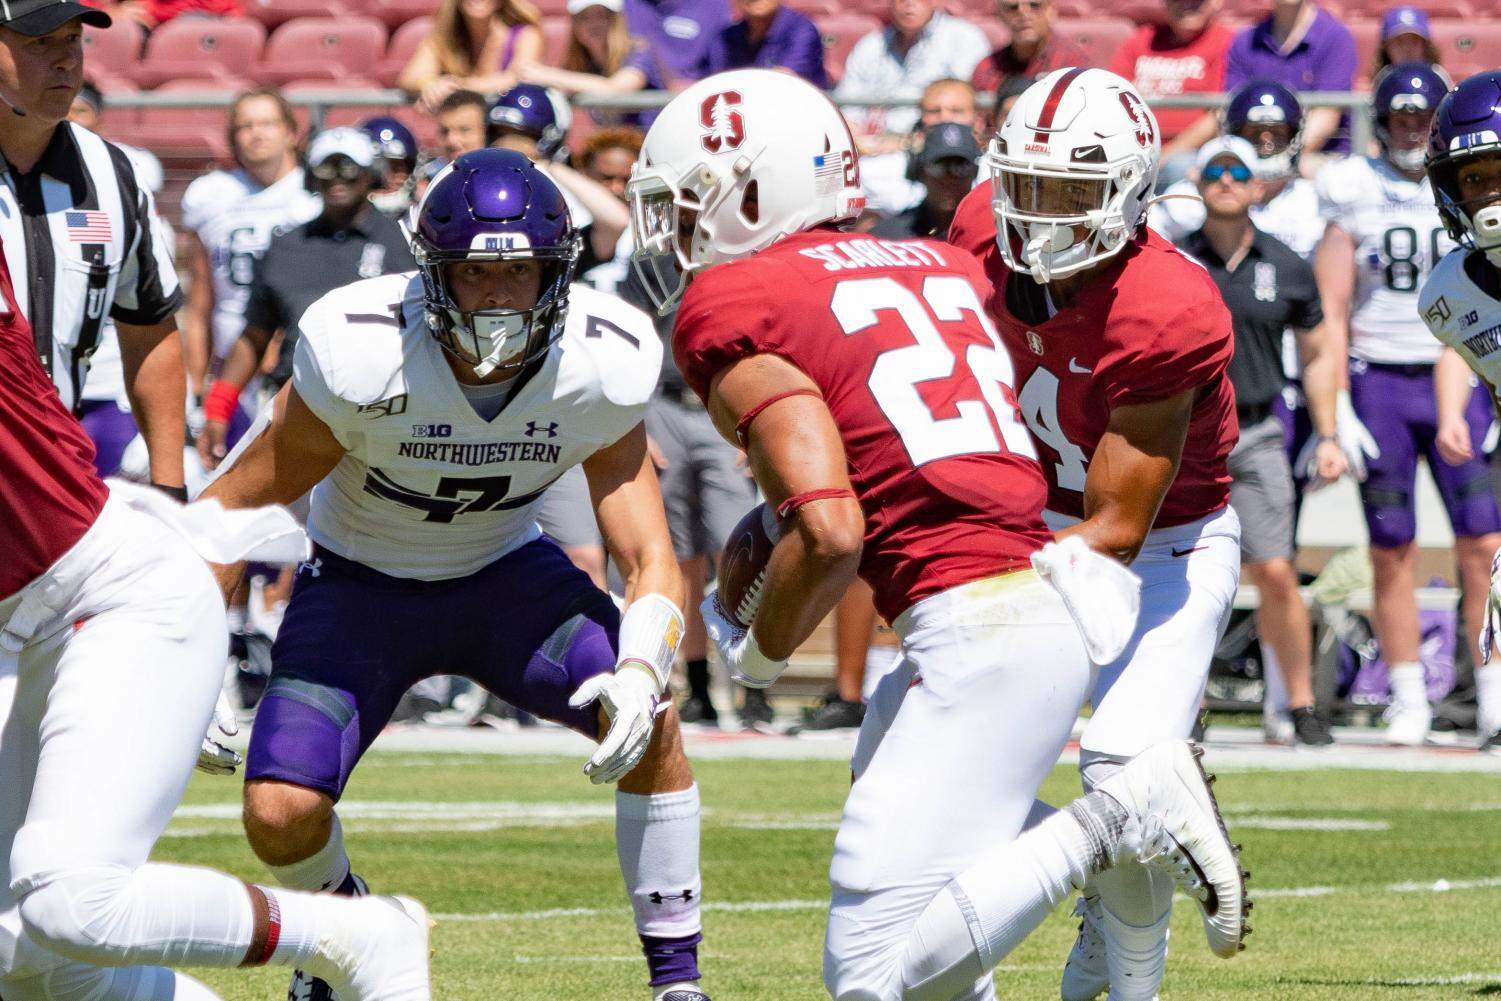 Travis Whillock stares down a Stanford running back. Whillock tied for the team lead with 10 tackles.